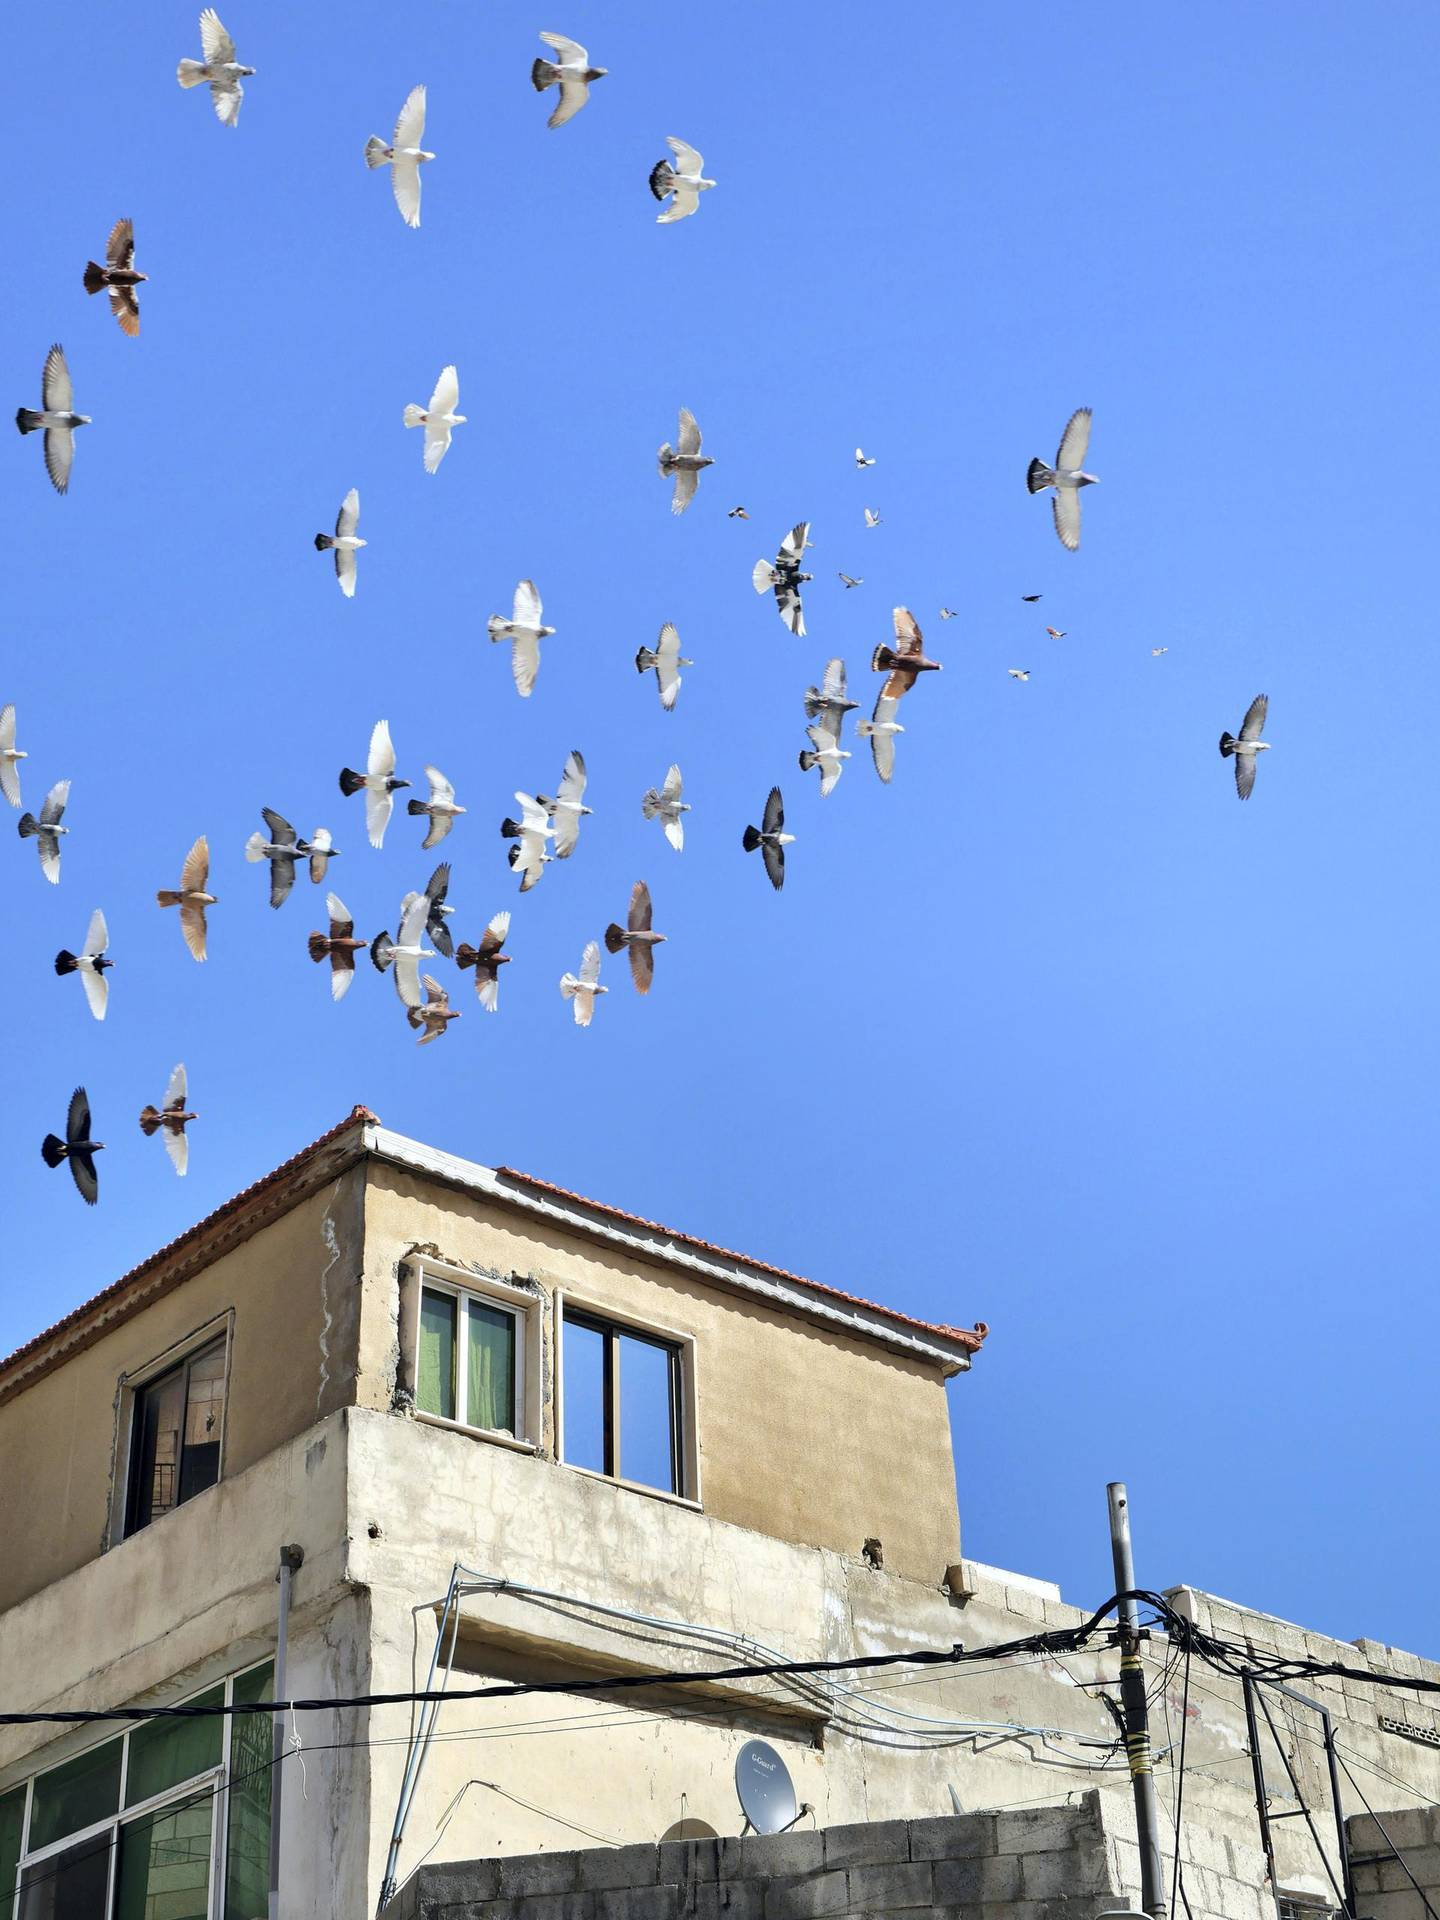 Groups of pigeons fly around Zaid Al-Otayat family's rooftop in Amman. Picture by Charlie Faulkner